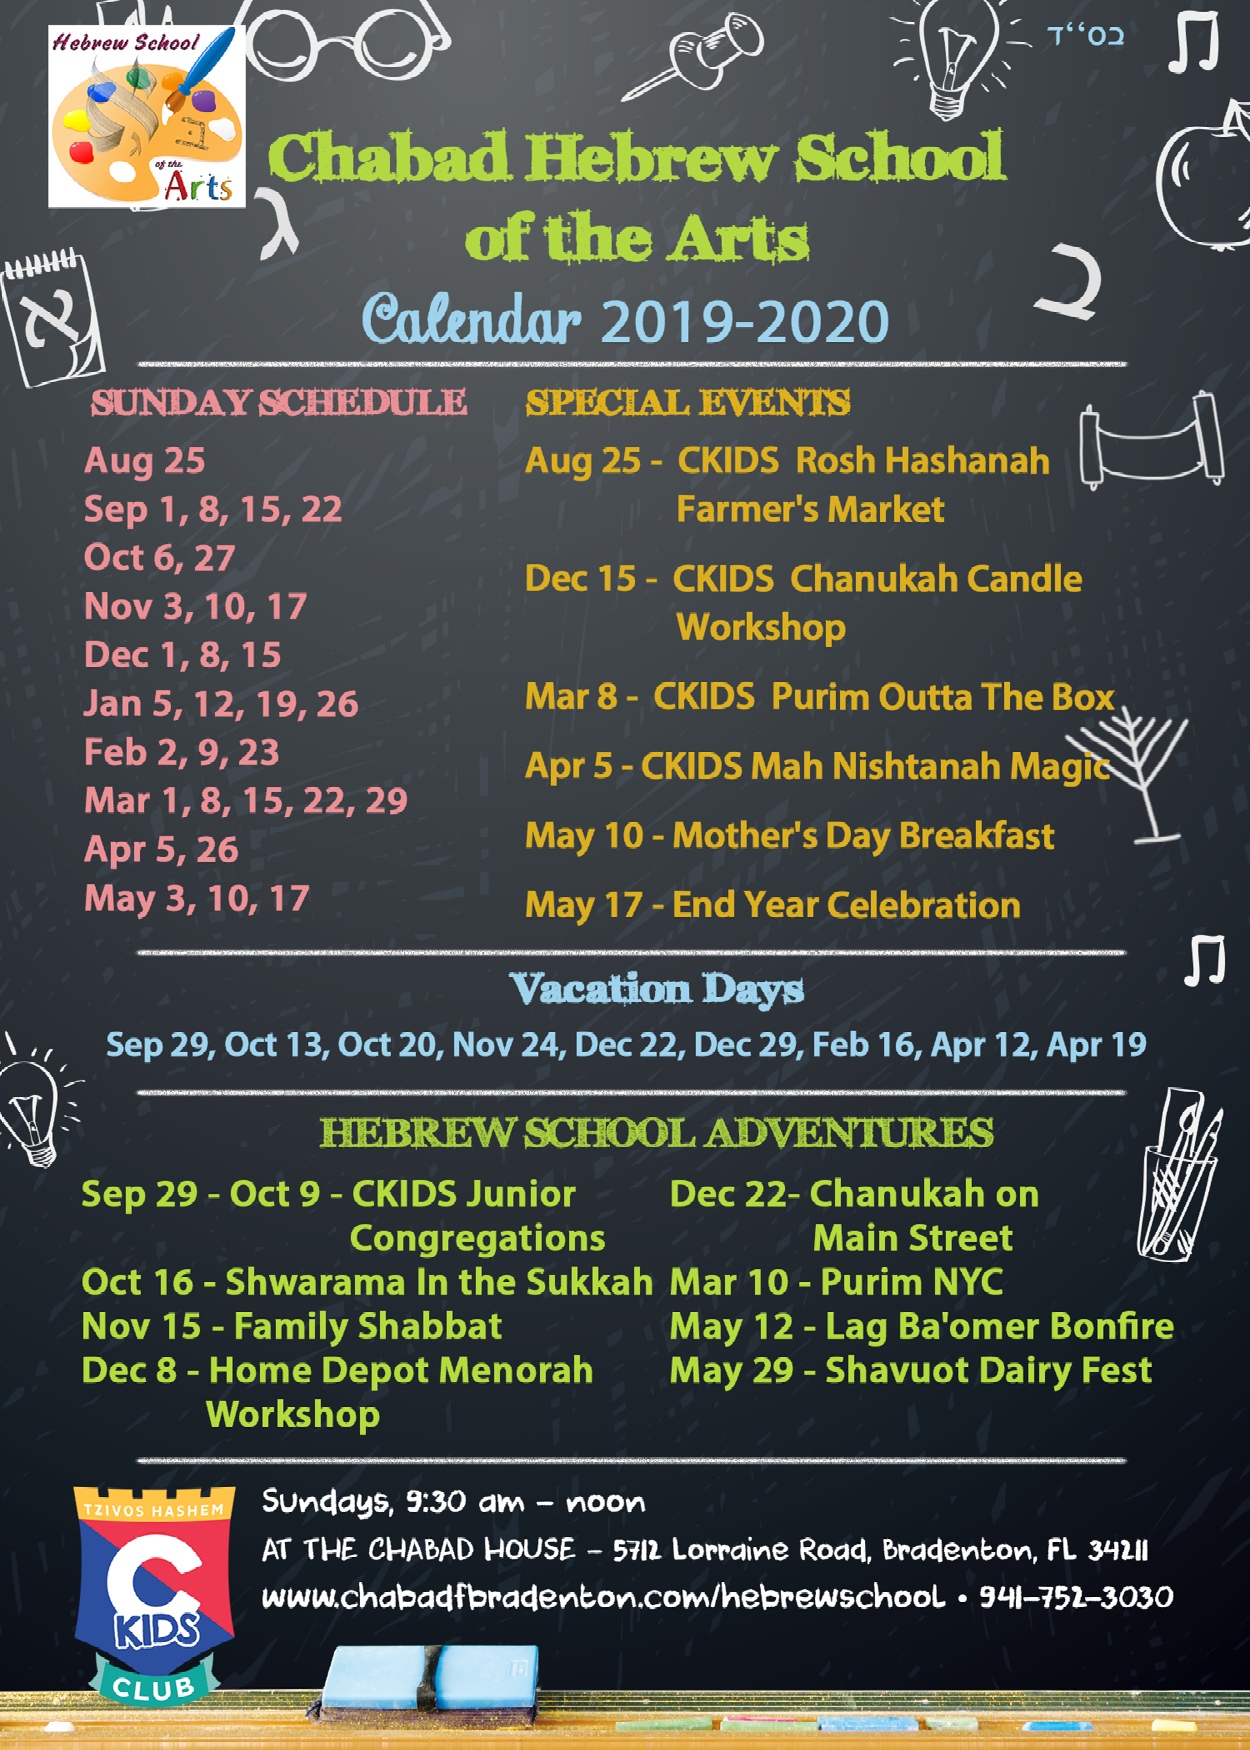 Chs Calendar 2019-20 - Chabad Of Bradenton intended for How To Create A Jweish Calender In One Page For 2019-2020